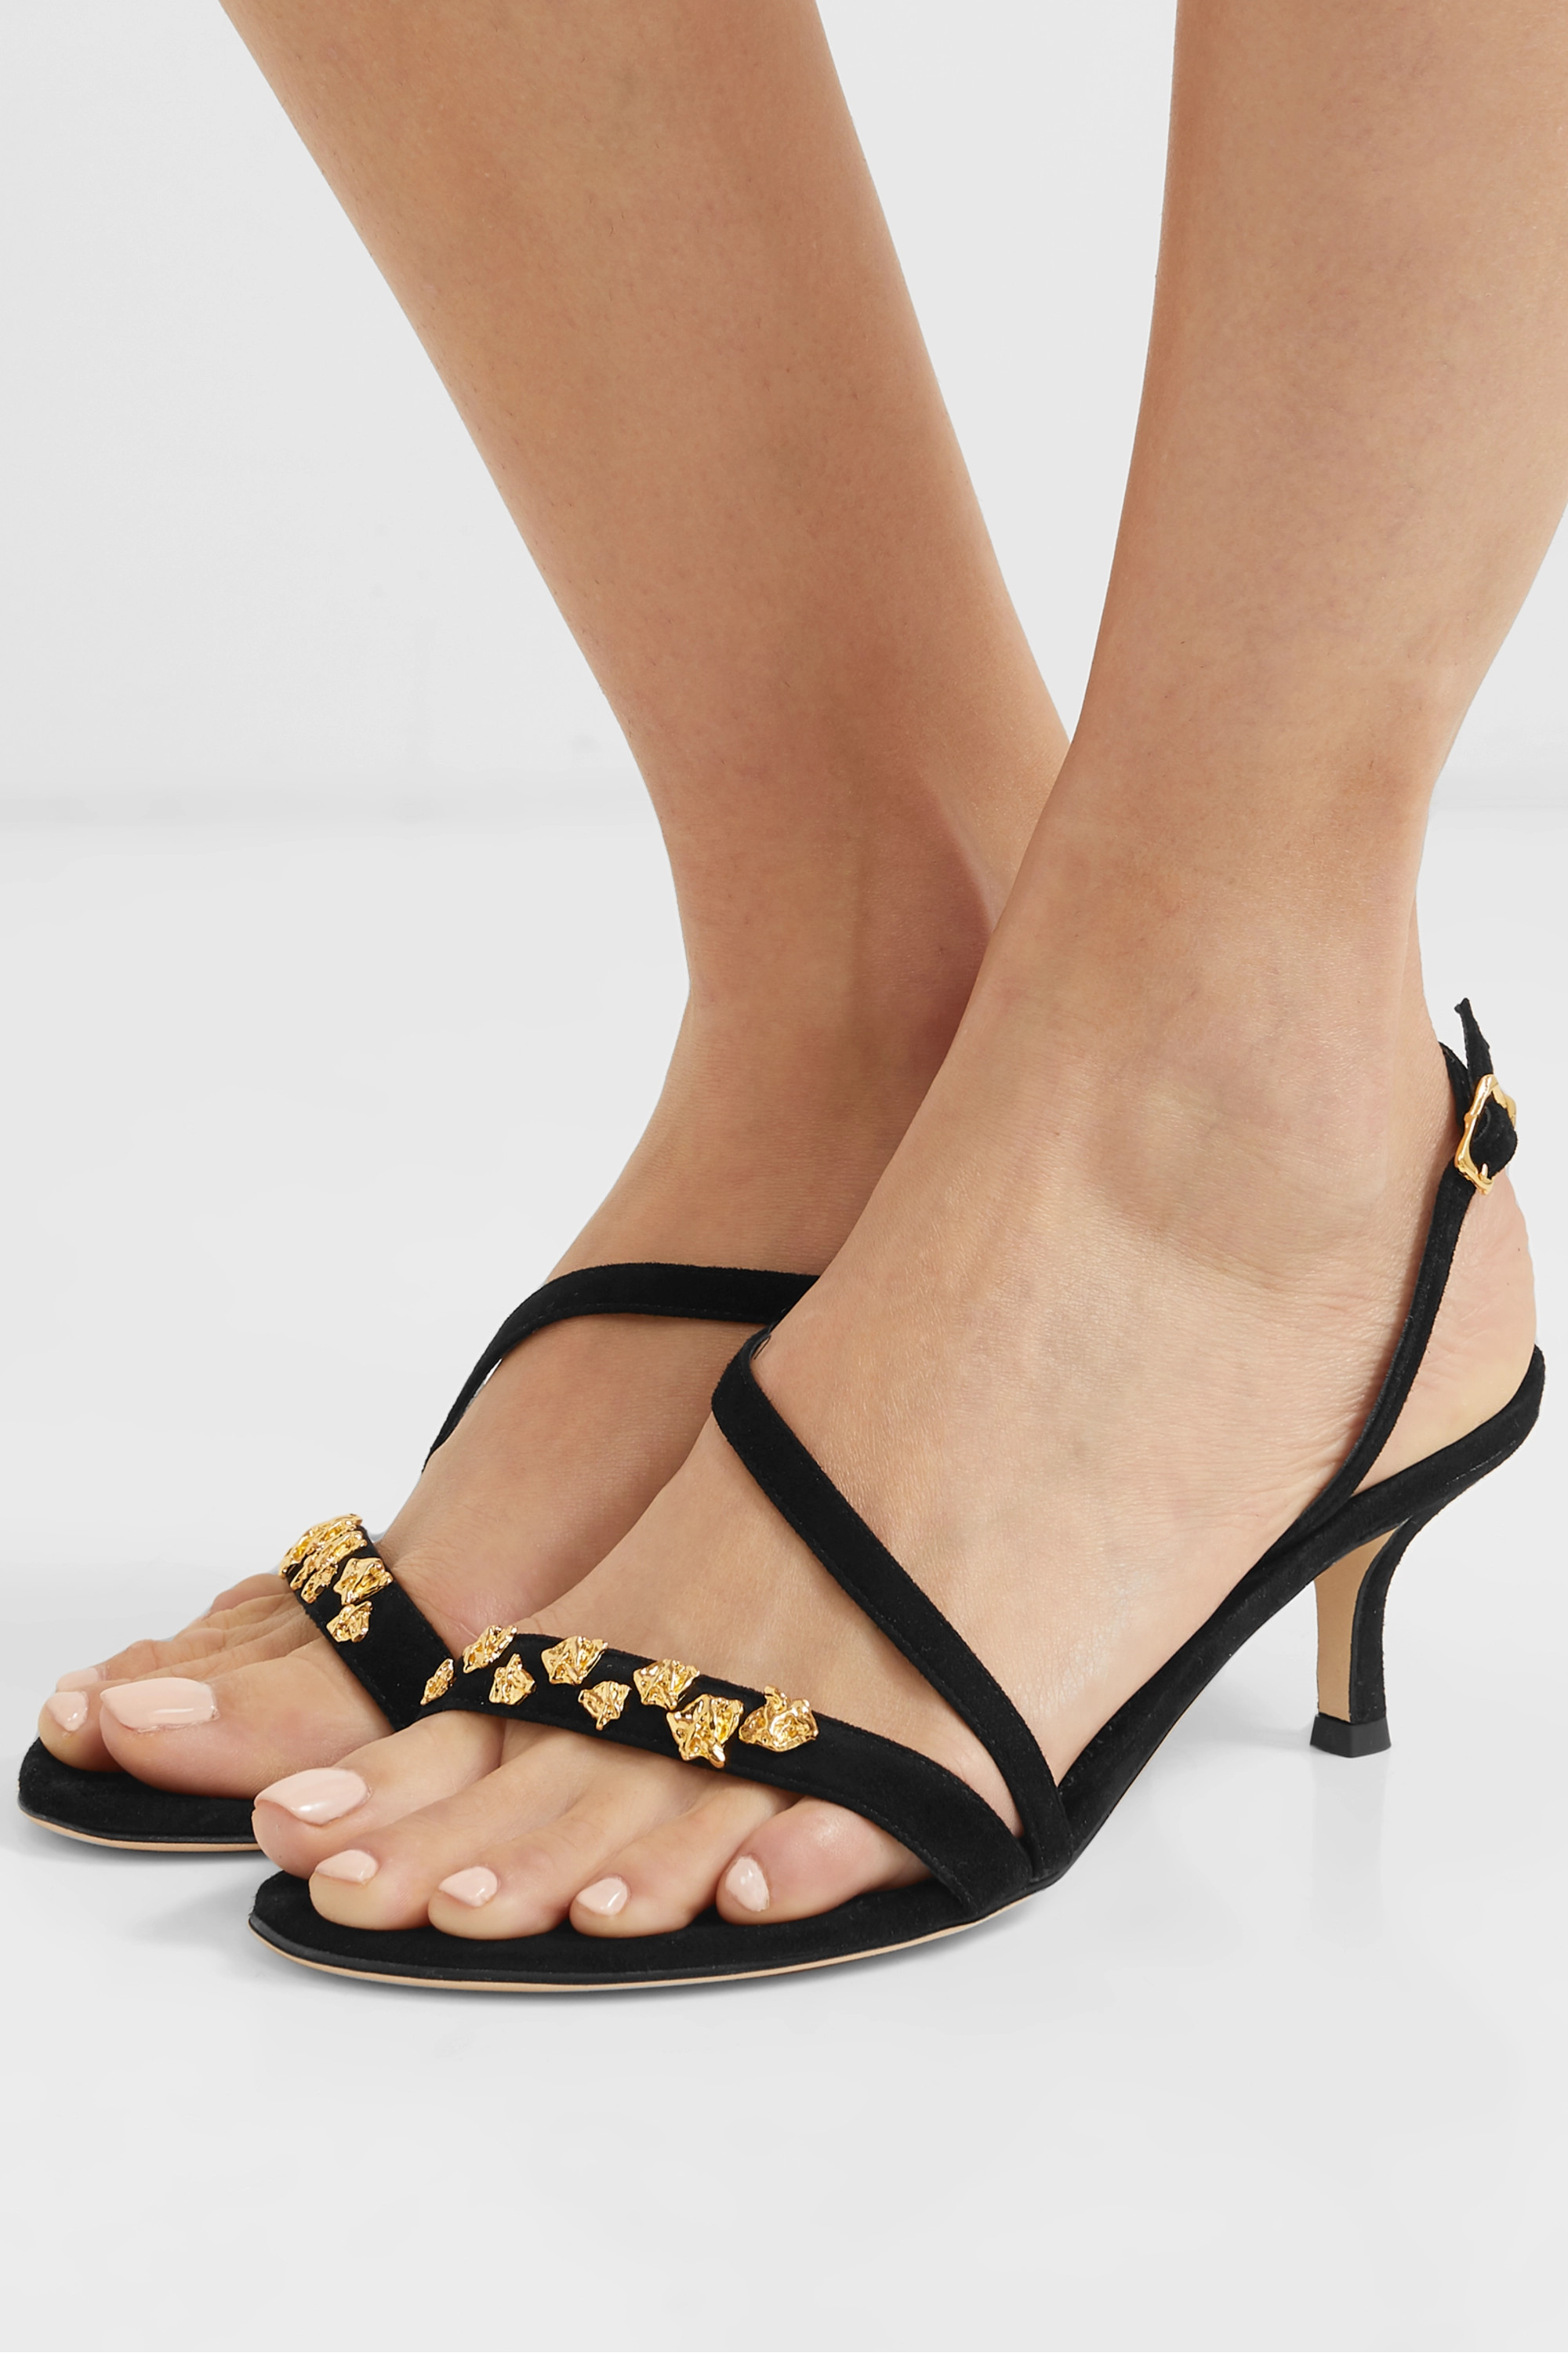 Alighieri The Fragment embellished suede sandals